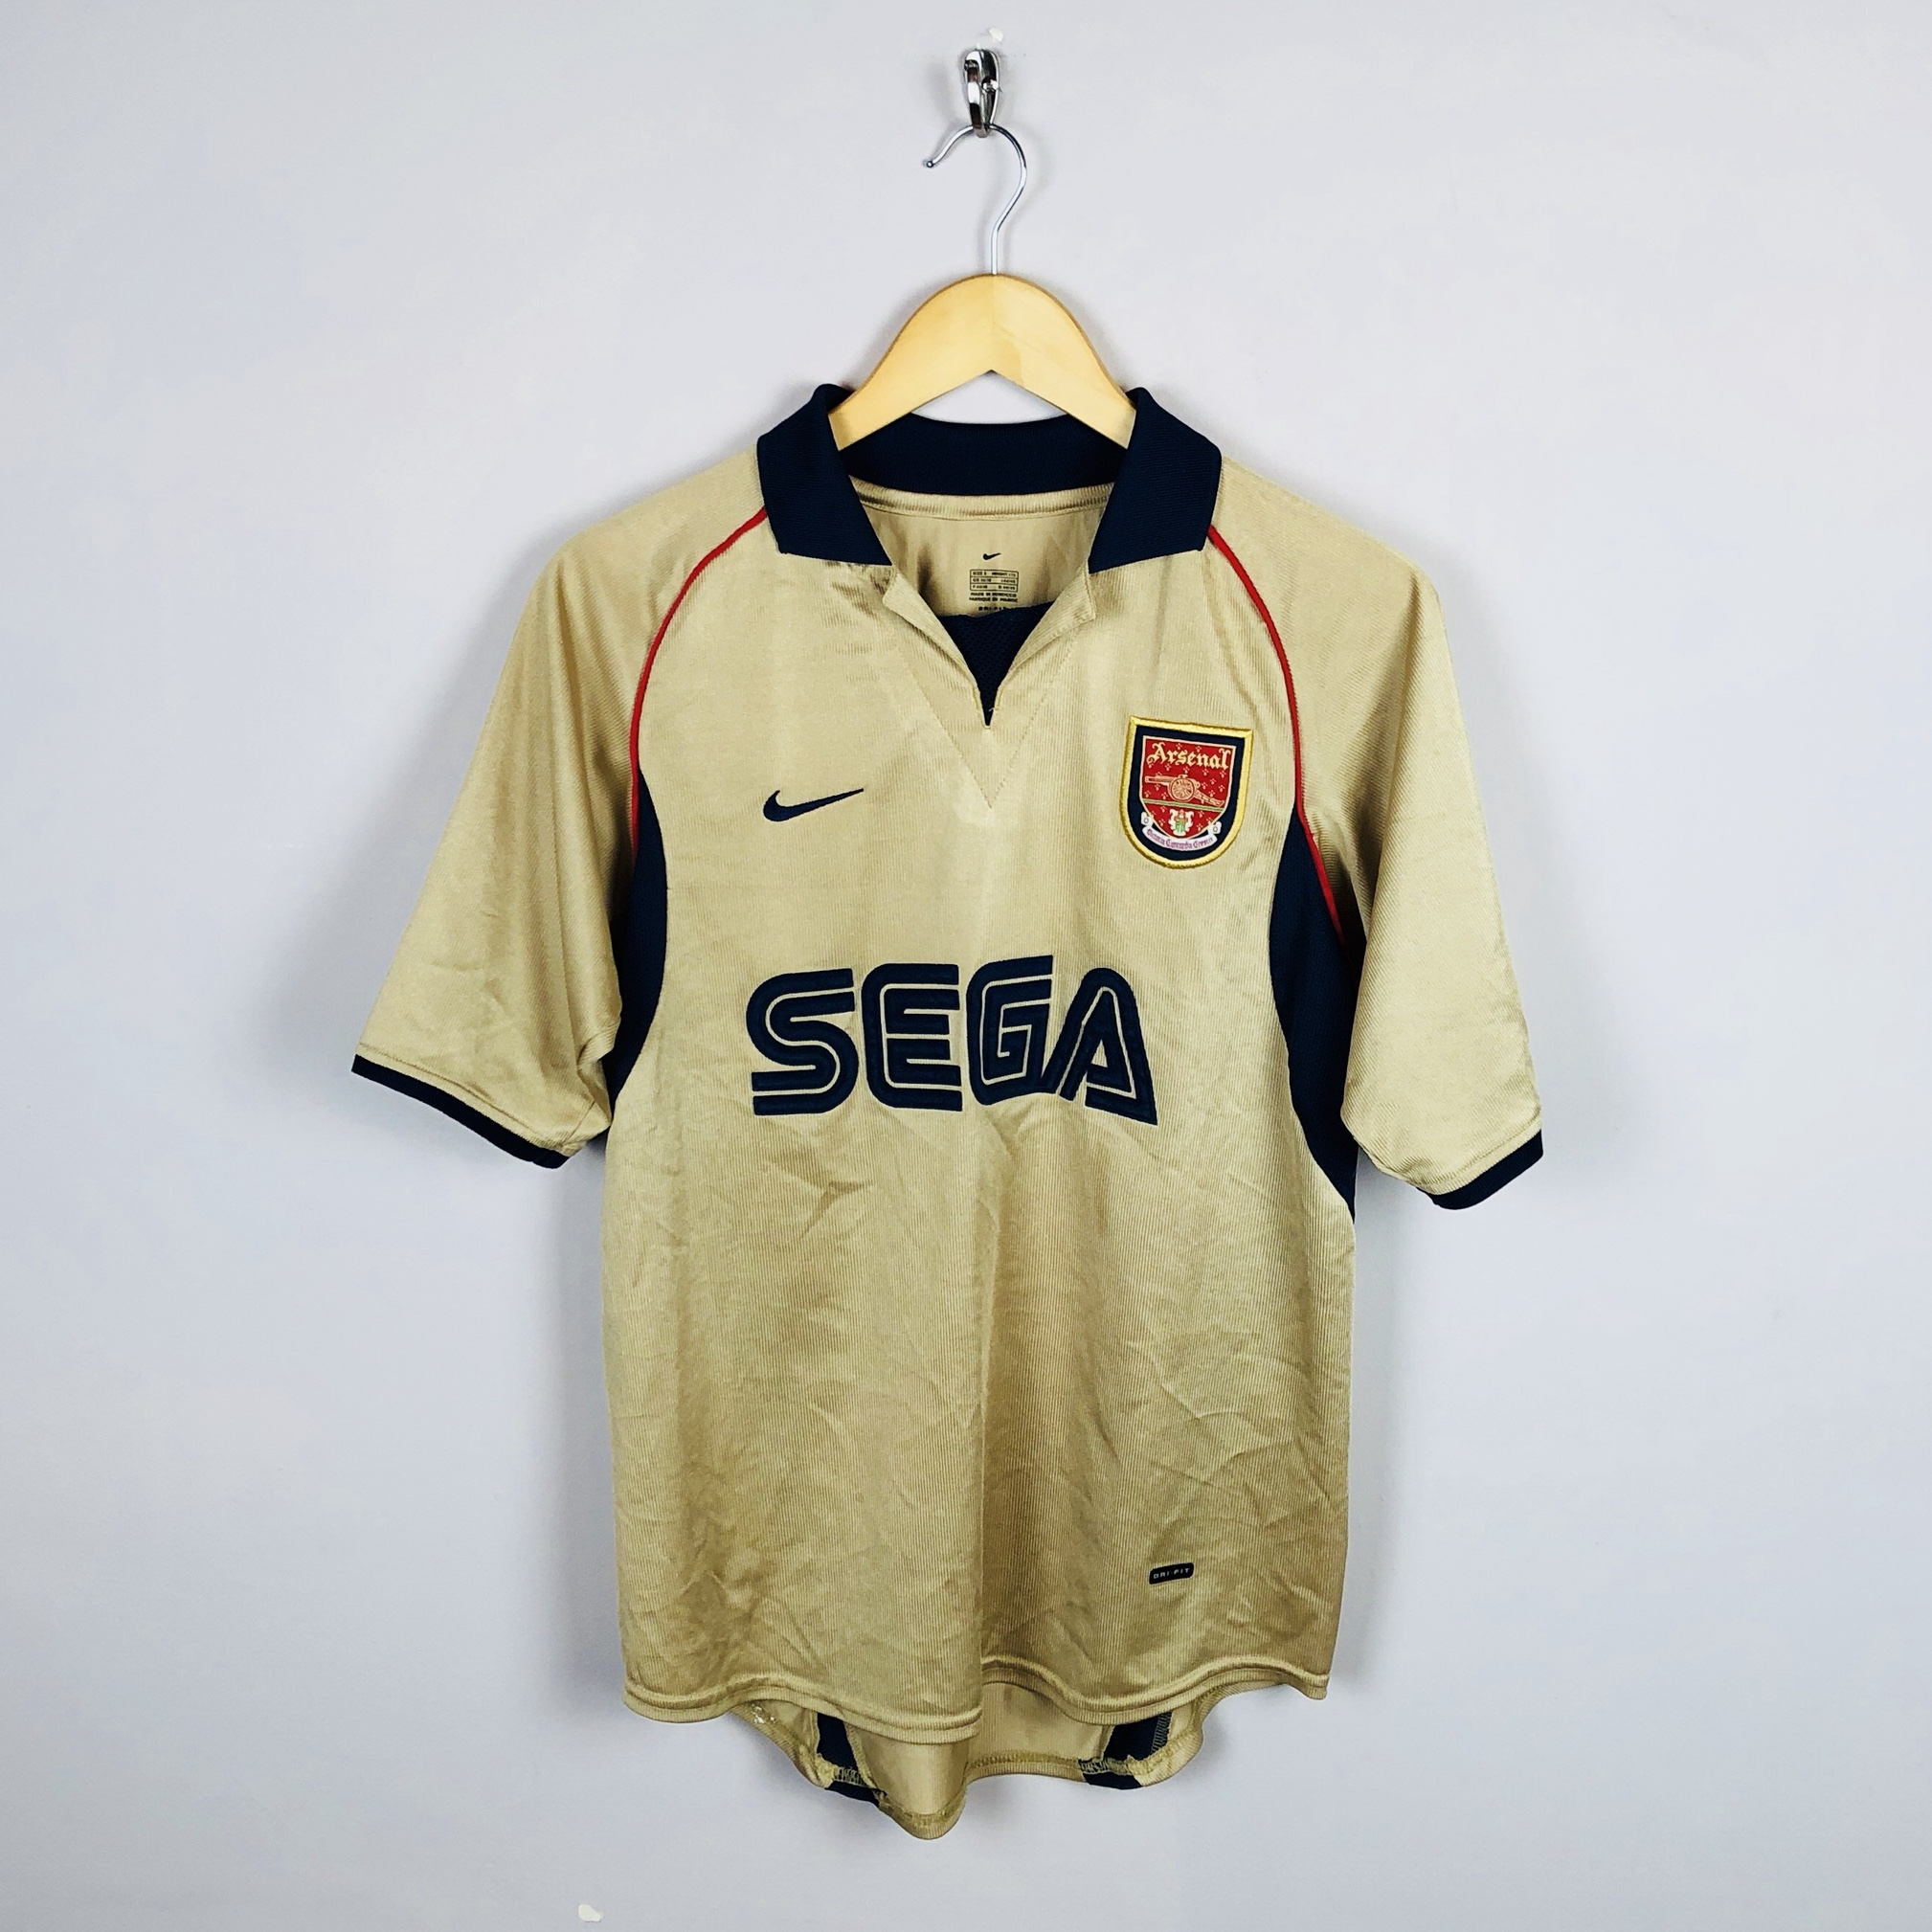 best website 14ddc 61ed9 Gold Nike Arsenal away kit 2001/02 in good condition... - Depop